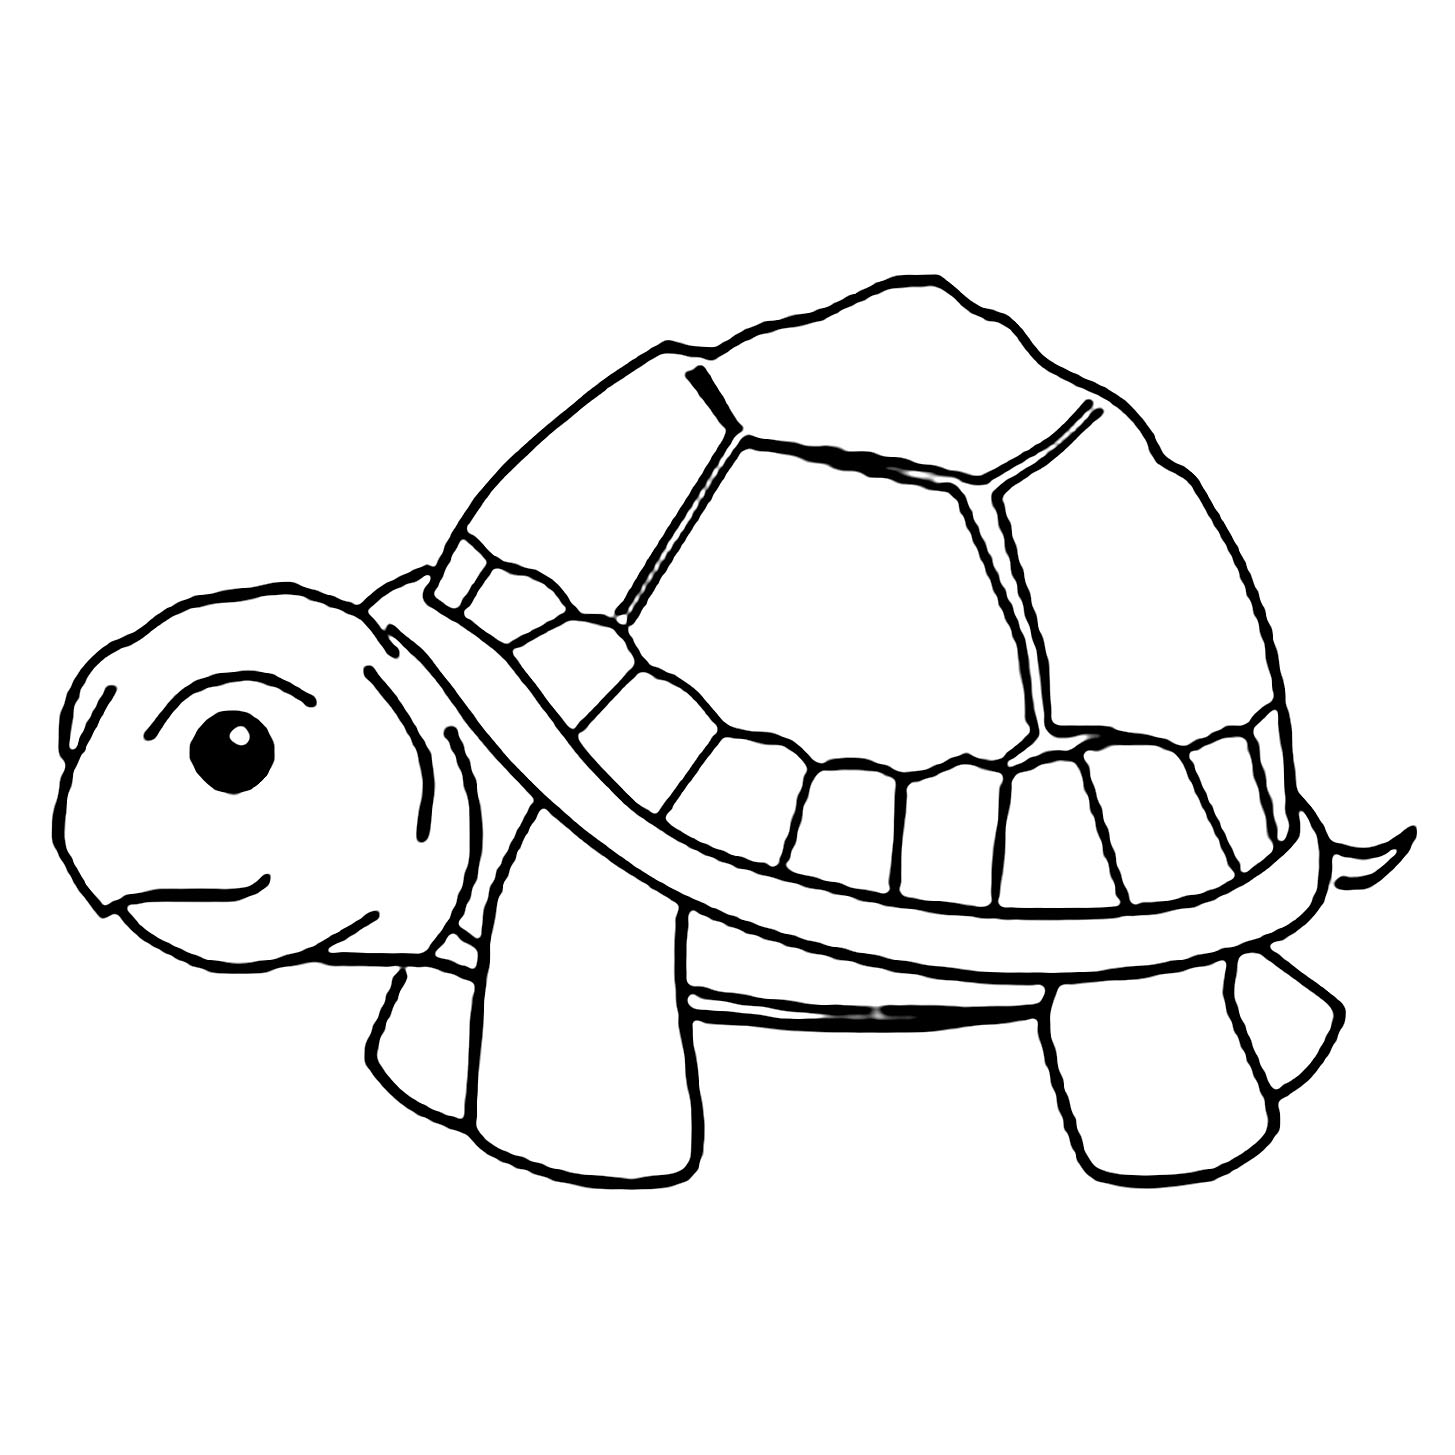 coloring picture turtle print download turtle coloring pages as the turtle coloring picture